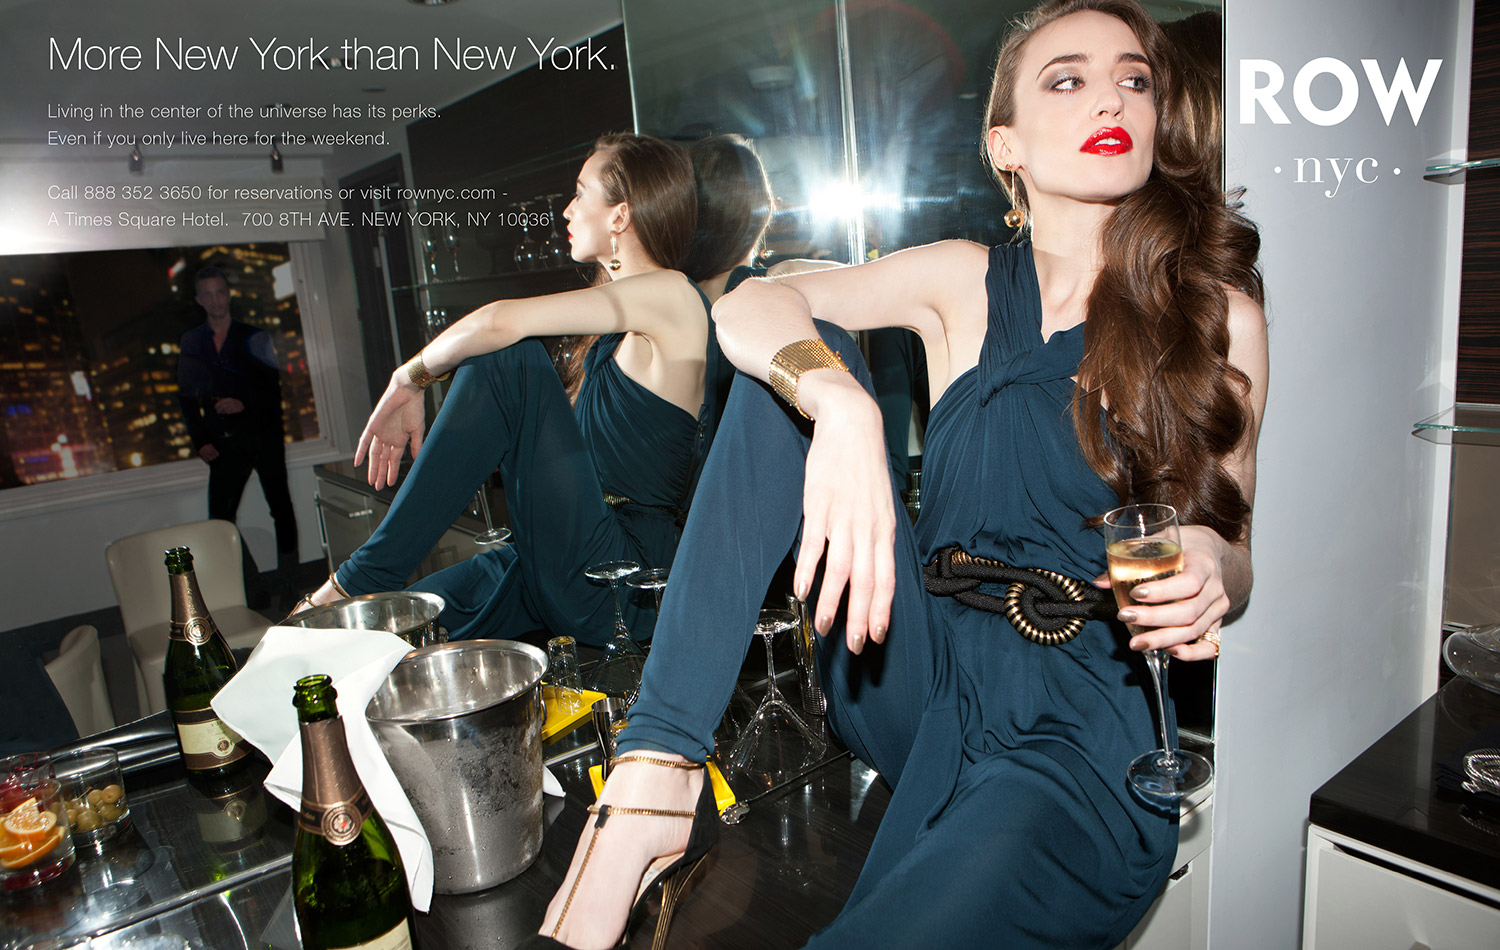 Model drinking champagne in kitchen for Row NYC ad